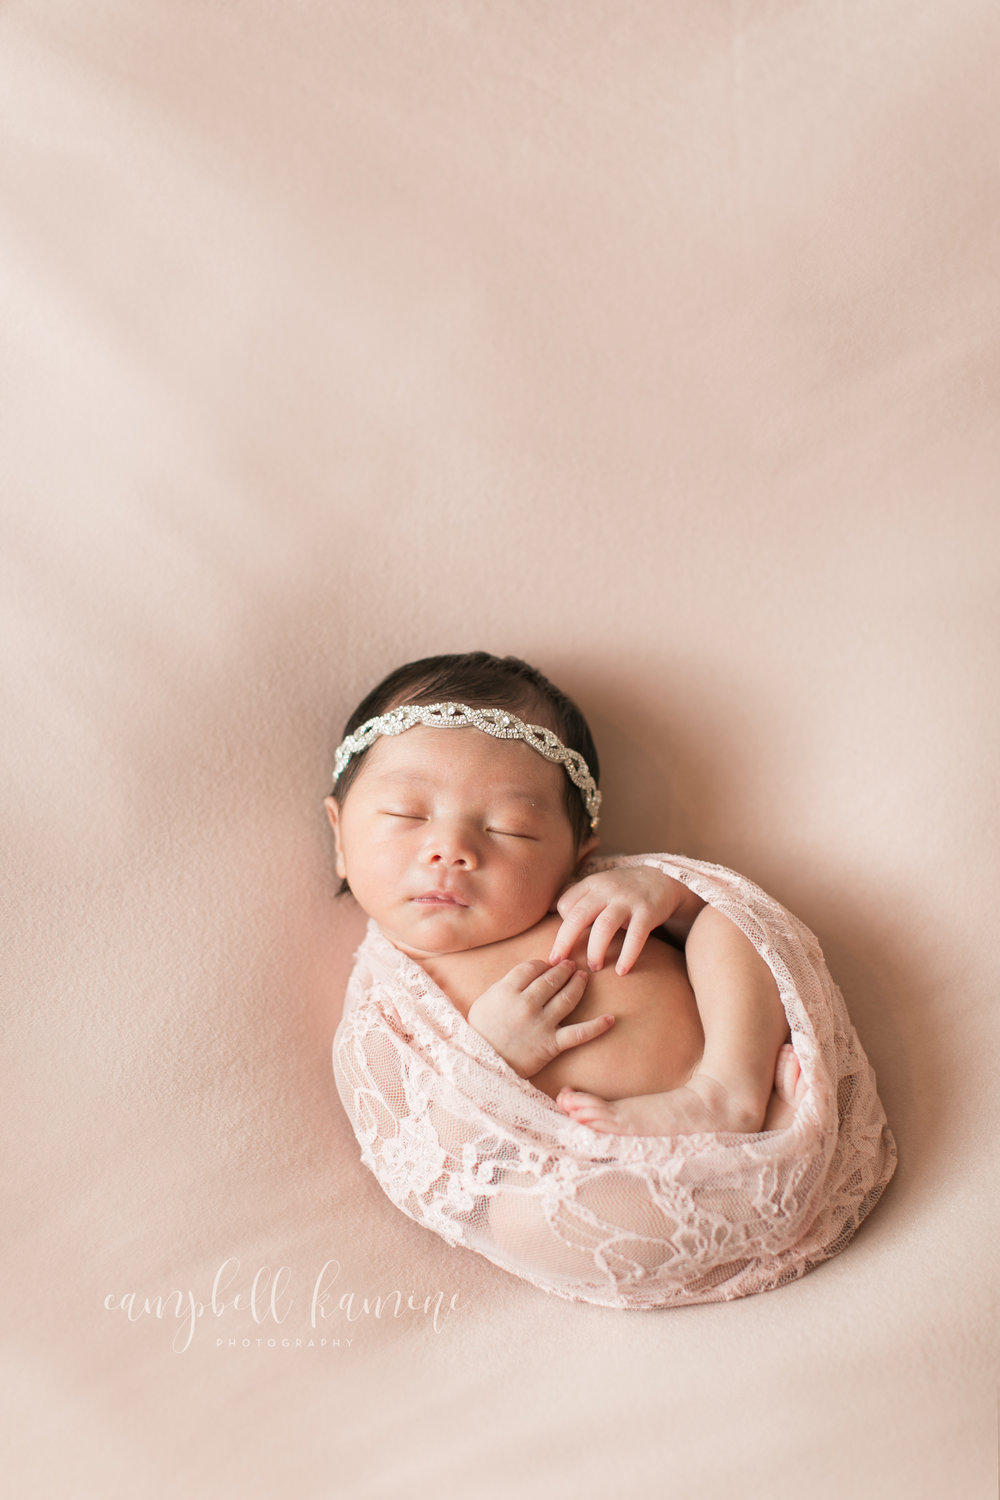 Newborn Photography | Lily | Campbell Kamine Photgraphy-1.jpg